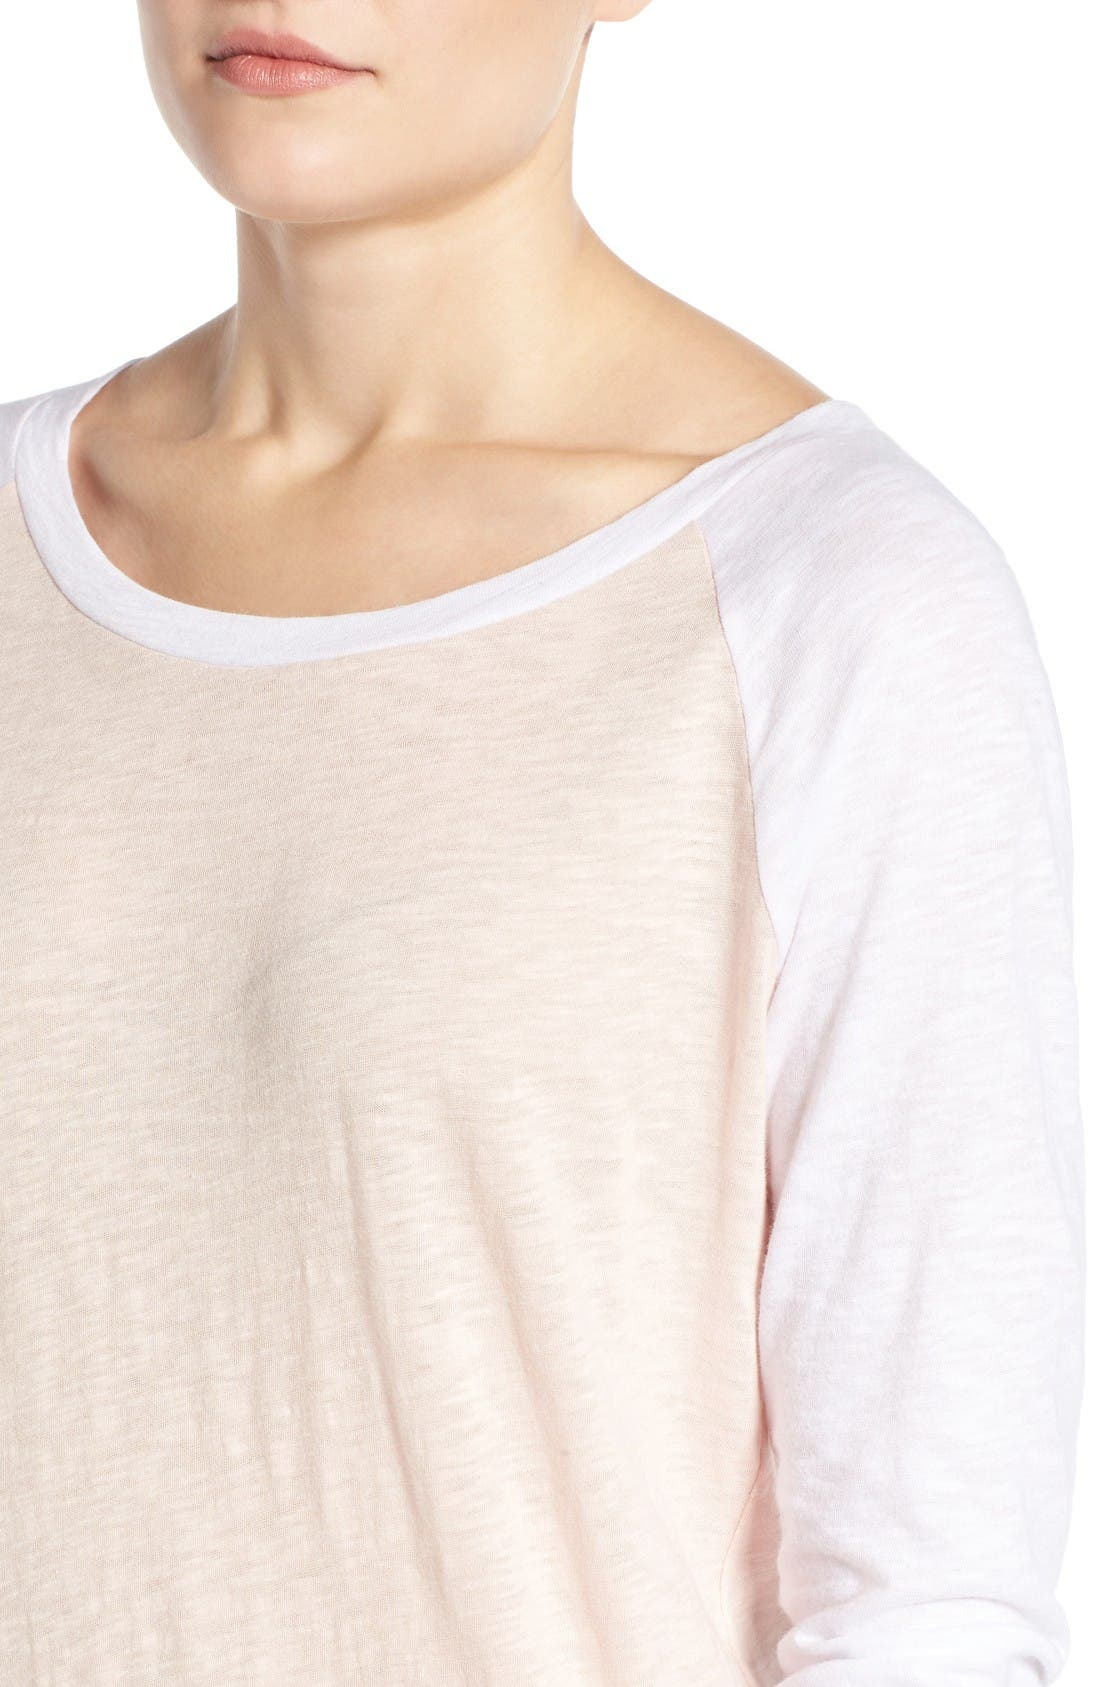 Lightweight Colorblock Cotton Tee,                             Alternate thumbnail 8, color,                             Pink Peach- White Colorblock